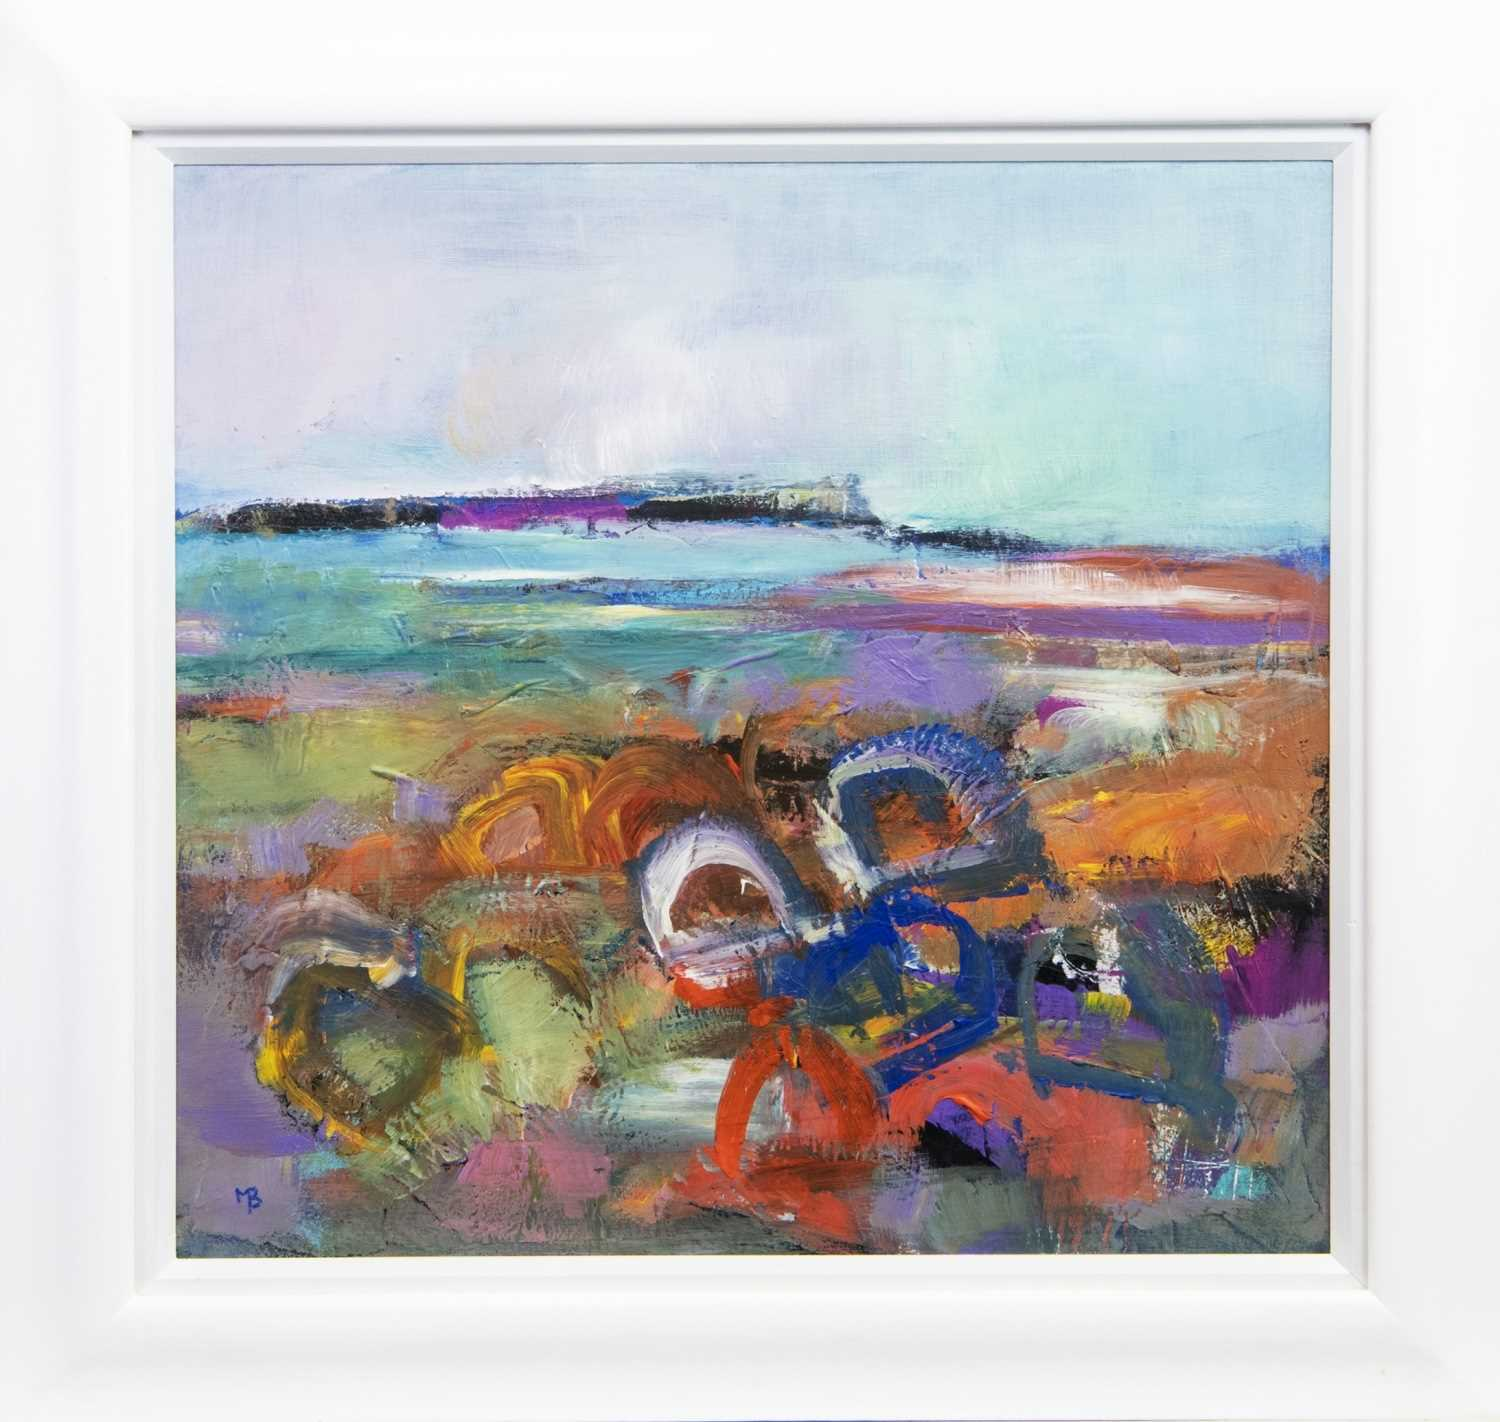 Lot 618-CREELS IN THE SHORE, AN OIL BY MAY BYRNE